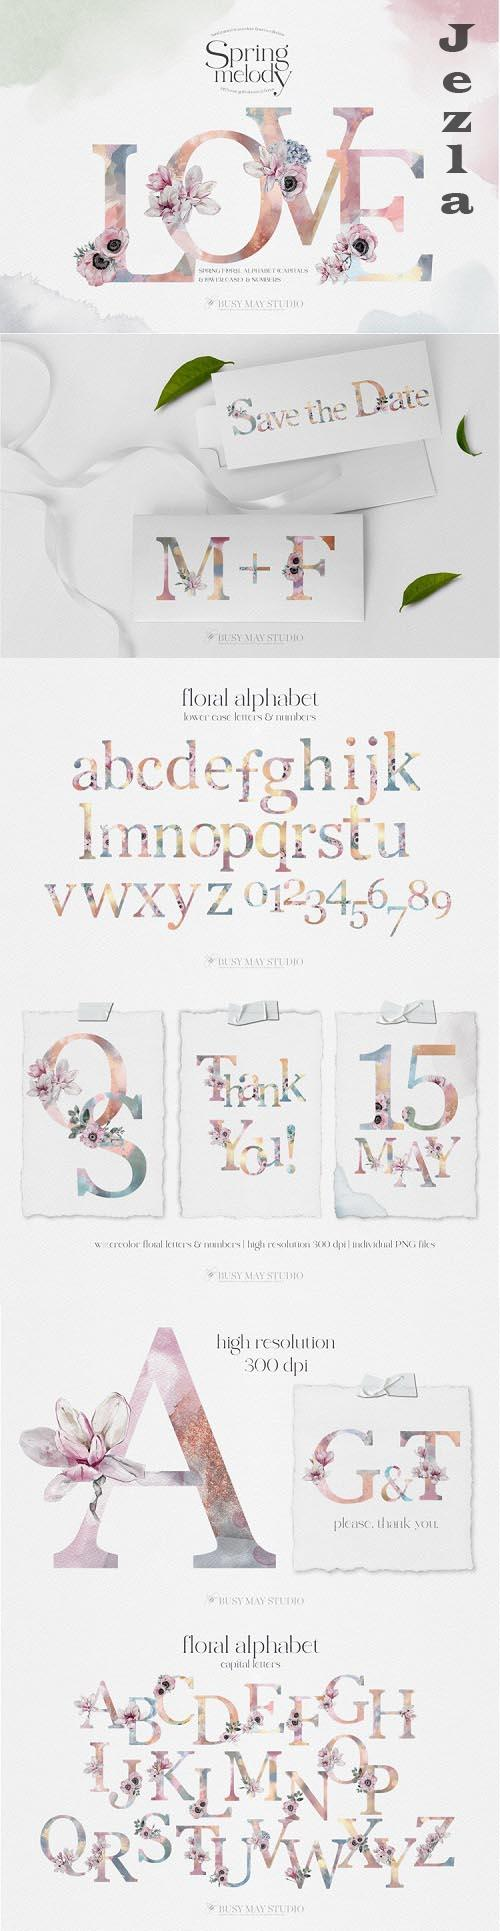 Watercolor Floral Alphabet Spring Rose Gold Letters PNG - 1139800